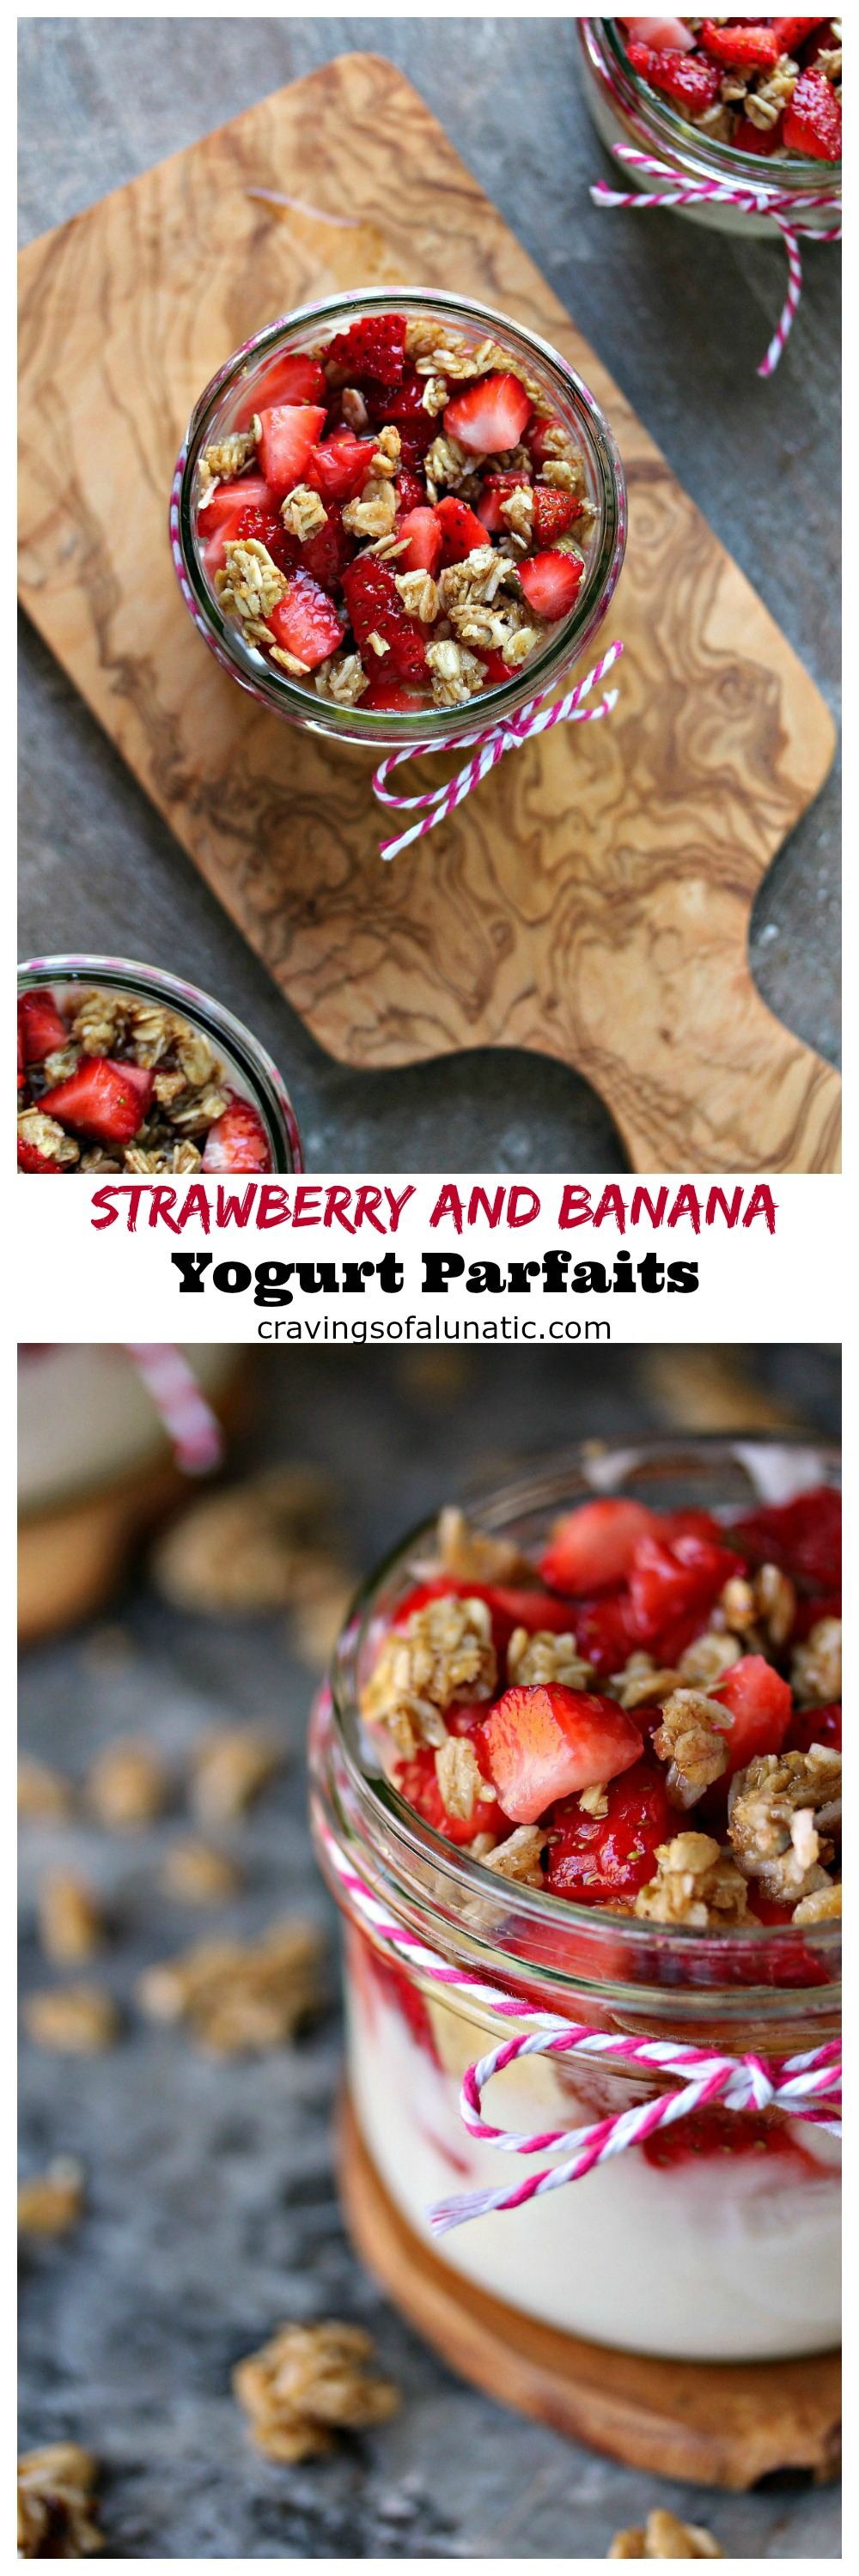 Strawberry and Banana Yogurt Parfaits from cravingsofalunatic.com- These Breakfast Parfaits are layered with Greek Yogurt, Fresh Strawberries and Bananas sweetened with a hint of honey and coconut sugar, then topped with Banana Nut Clusters. (@CravingsLunatic)